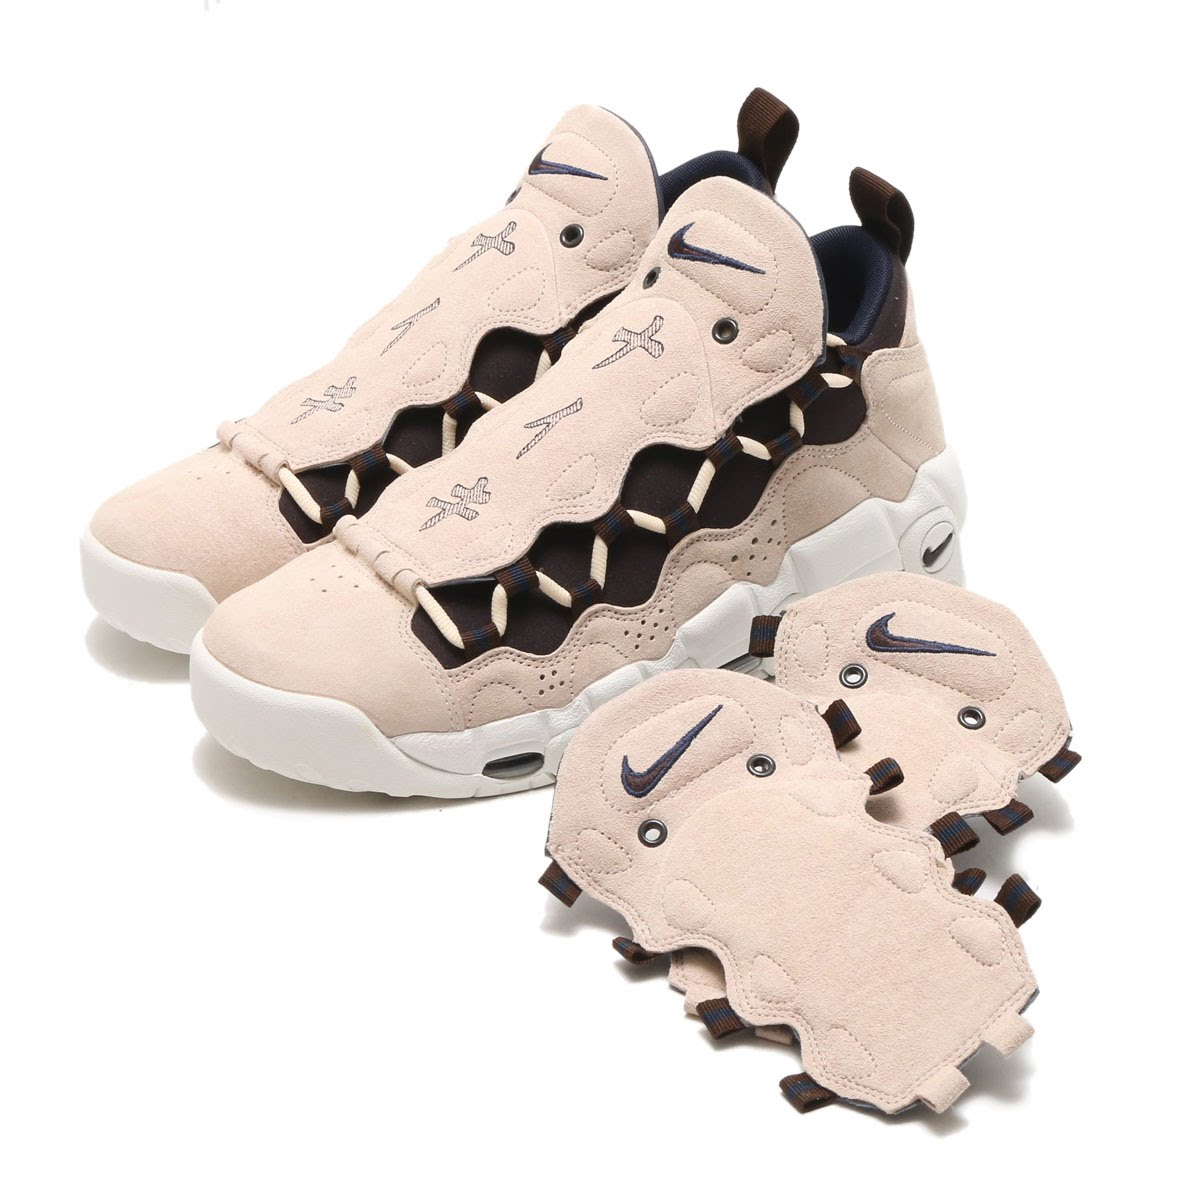 Men Nike Air More Money QS JP Pink Black